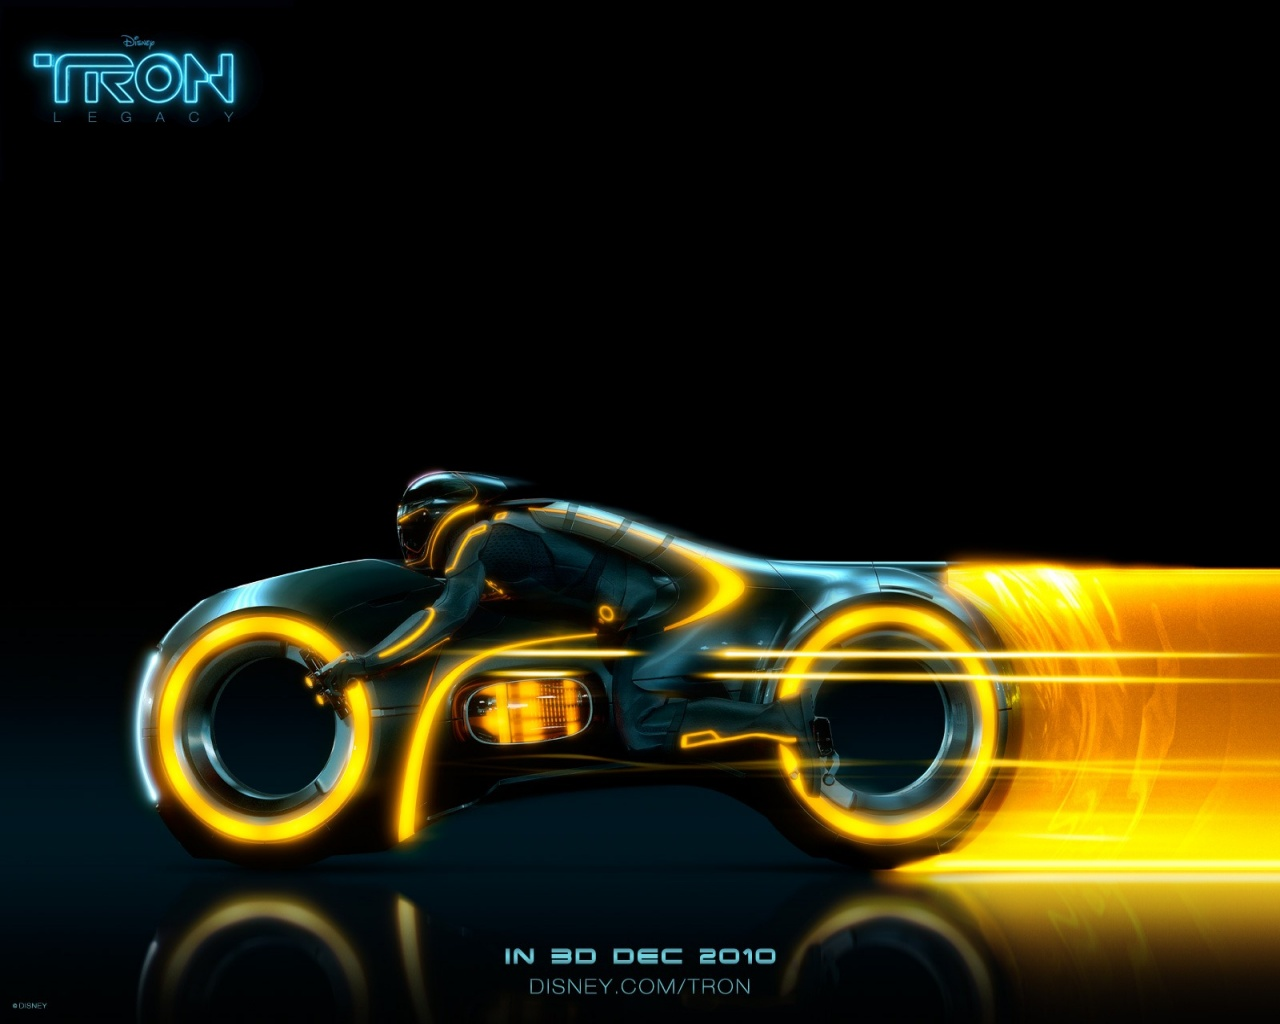 Wallpaper 3d Bike Tron Legacy Download: Tron Legacy Lightcycle Wallpapers In Jpg Format For Free